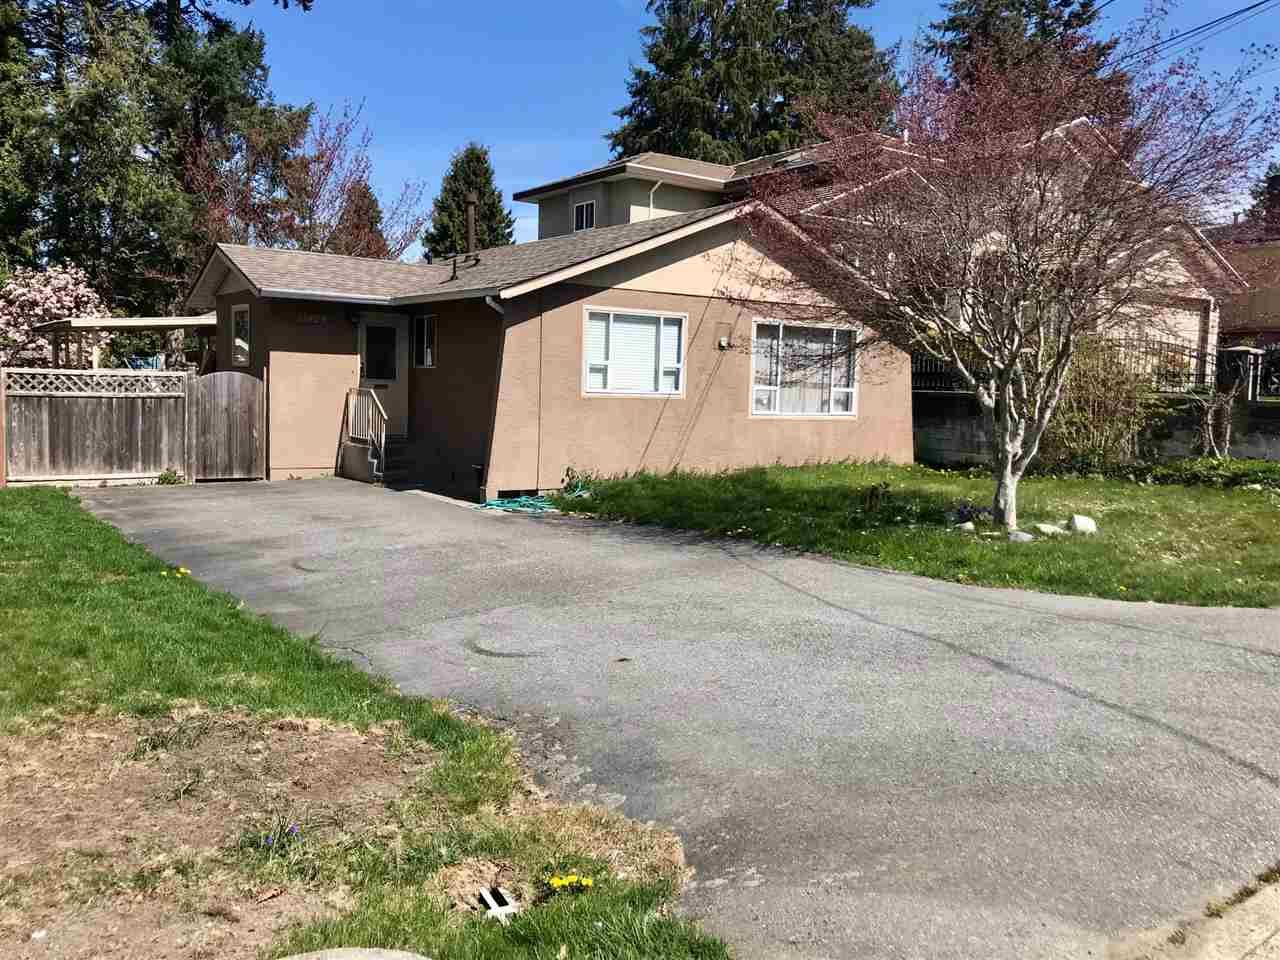 Main Photo: 11423 88 Avenue in Delta: Annieville House for sale (N. Delta)  : MLS®# R2451649